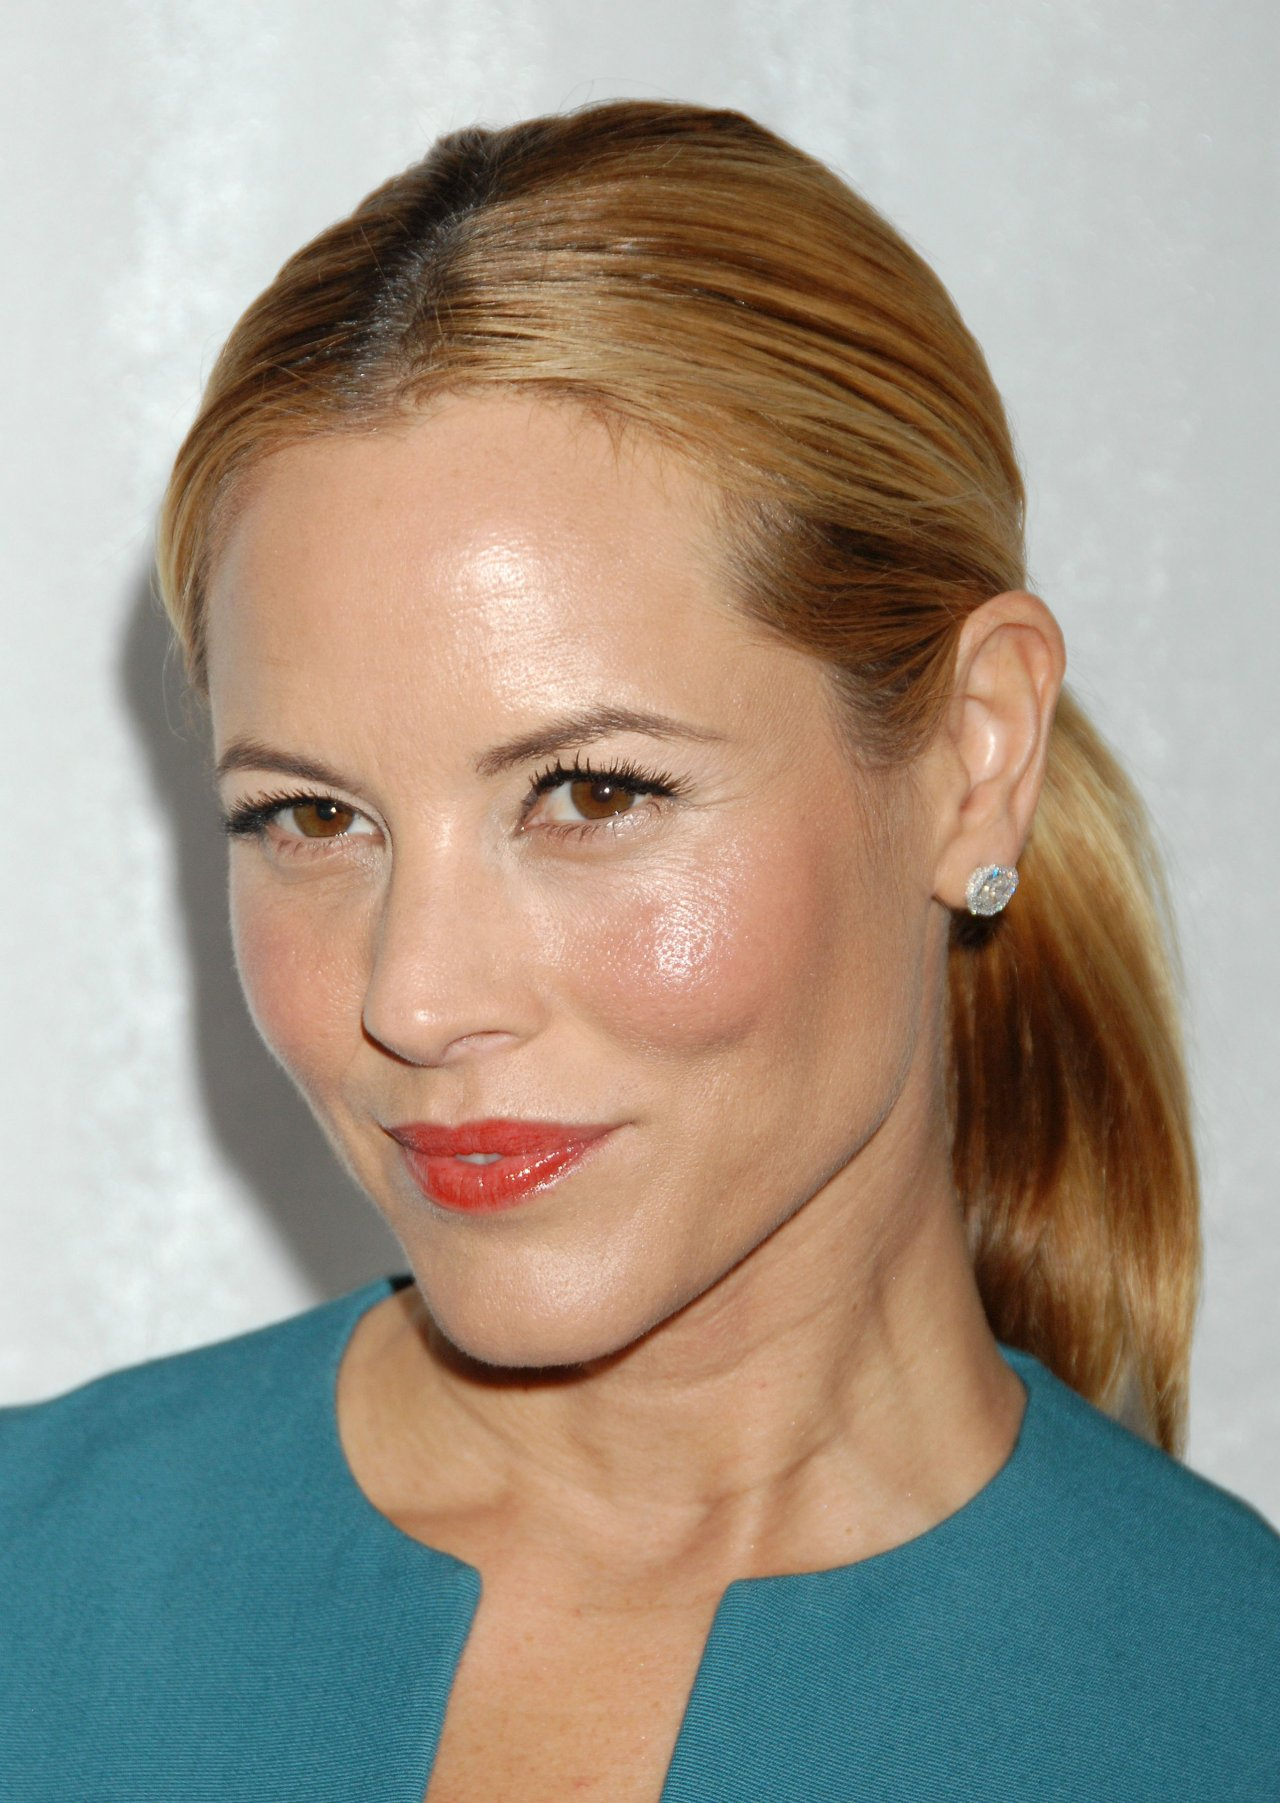 Maria bello wallpapers (96177)